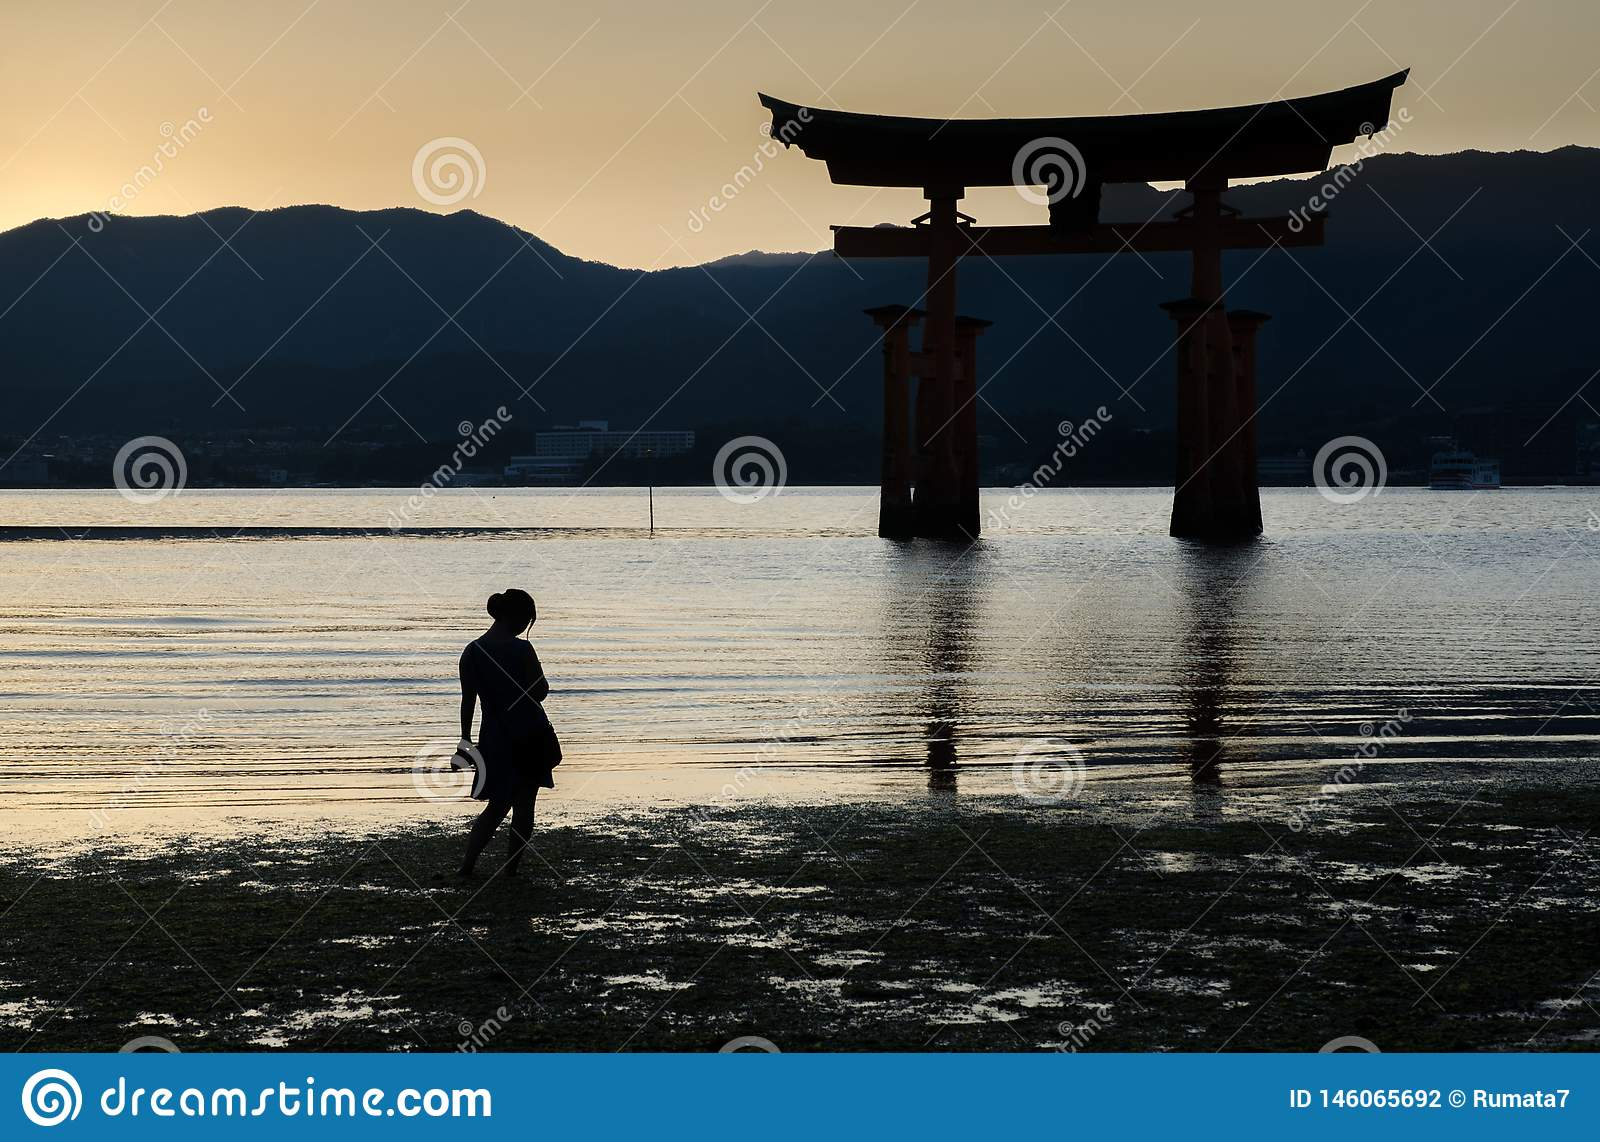 Pregnant woman silhouette near Torii -  floating gate of Miyajima (Itsukushima ) island at sunset time